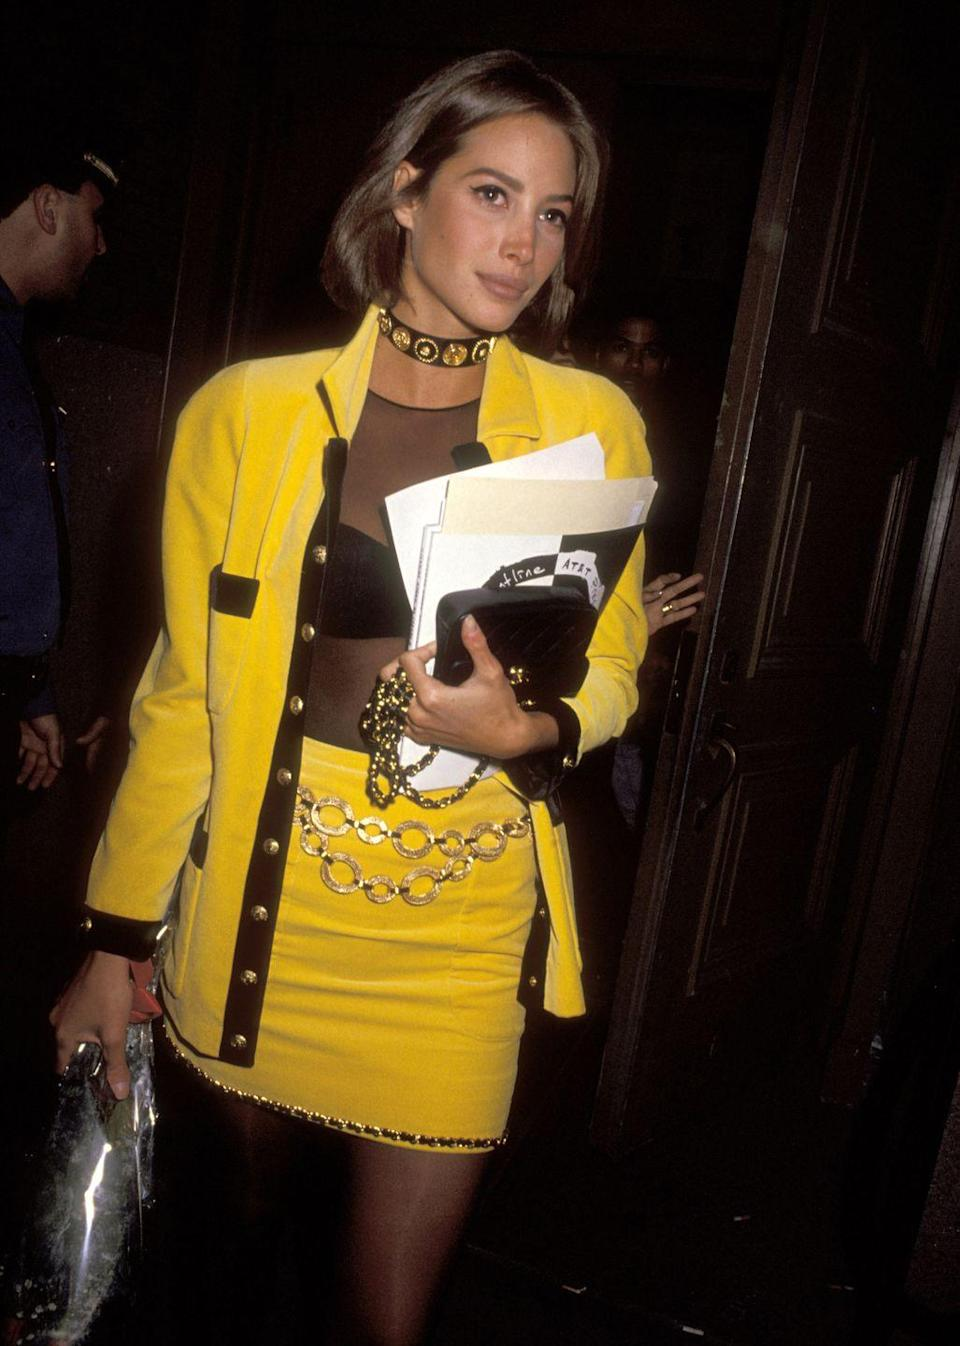 <p>Monochrome primary colors made the skirt suit a power suit of sorts. Fashion girls like Christy Turlington wore them with a sheer mesh top and chain-link accessories. </p>